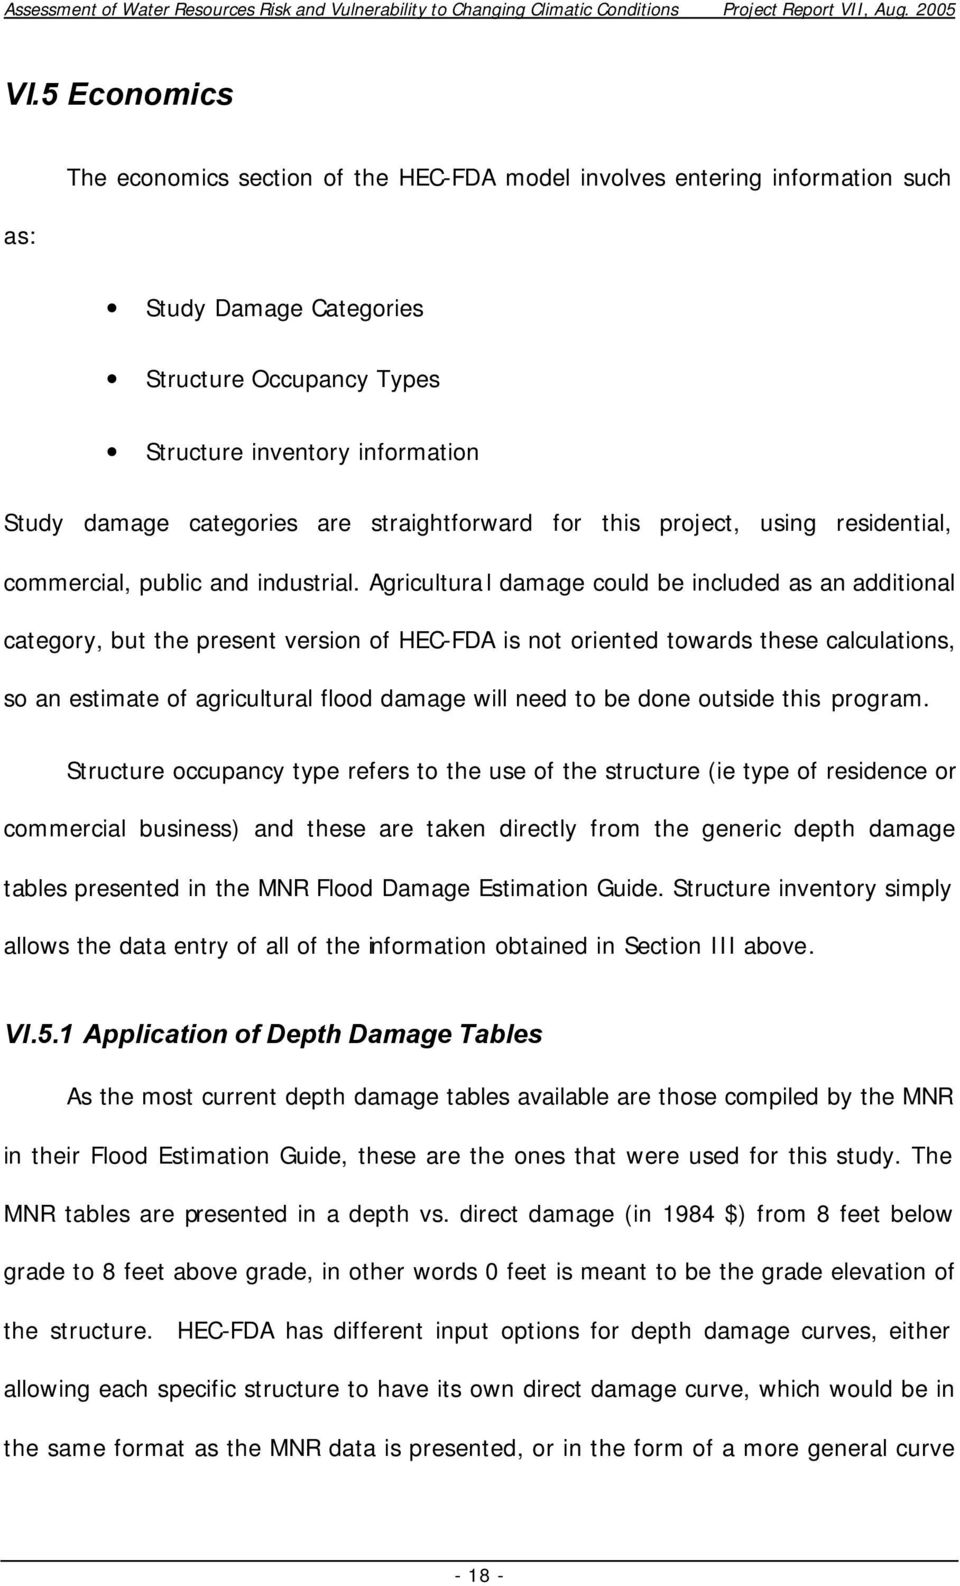 Agricultural damage could be included as an additional category, but the present version of HEC-FDA is not oriented towards these calculations, so an estimate of agricultural flood damage will need